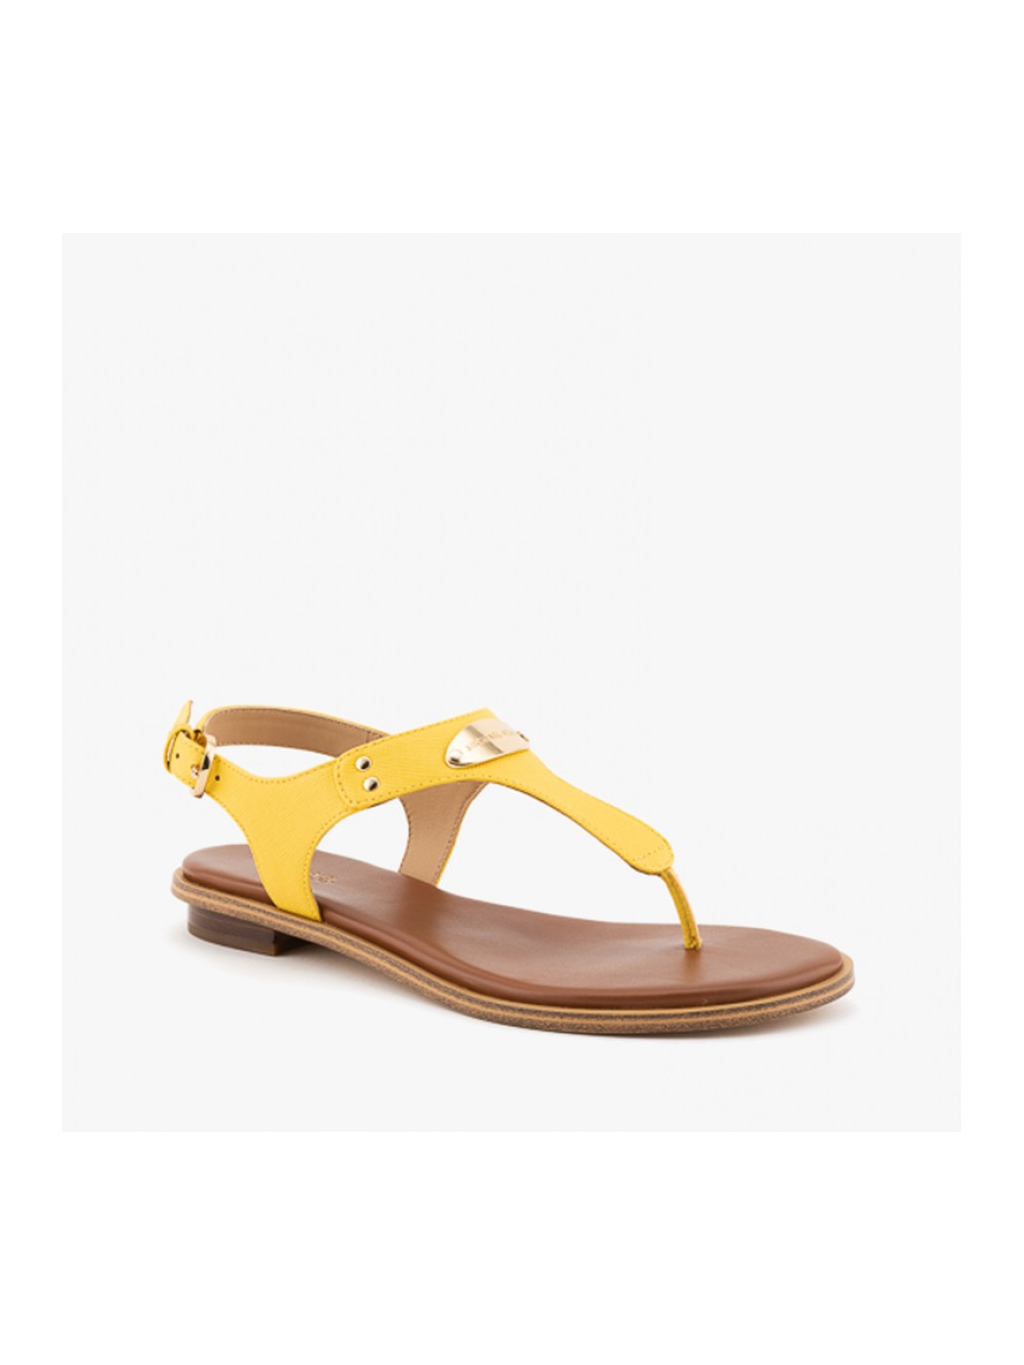 michael kors plate thong leather yellow damske zabky zlte (1)